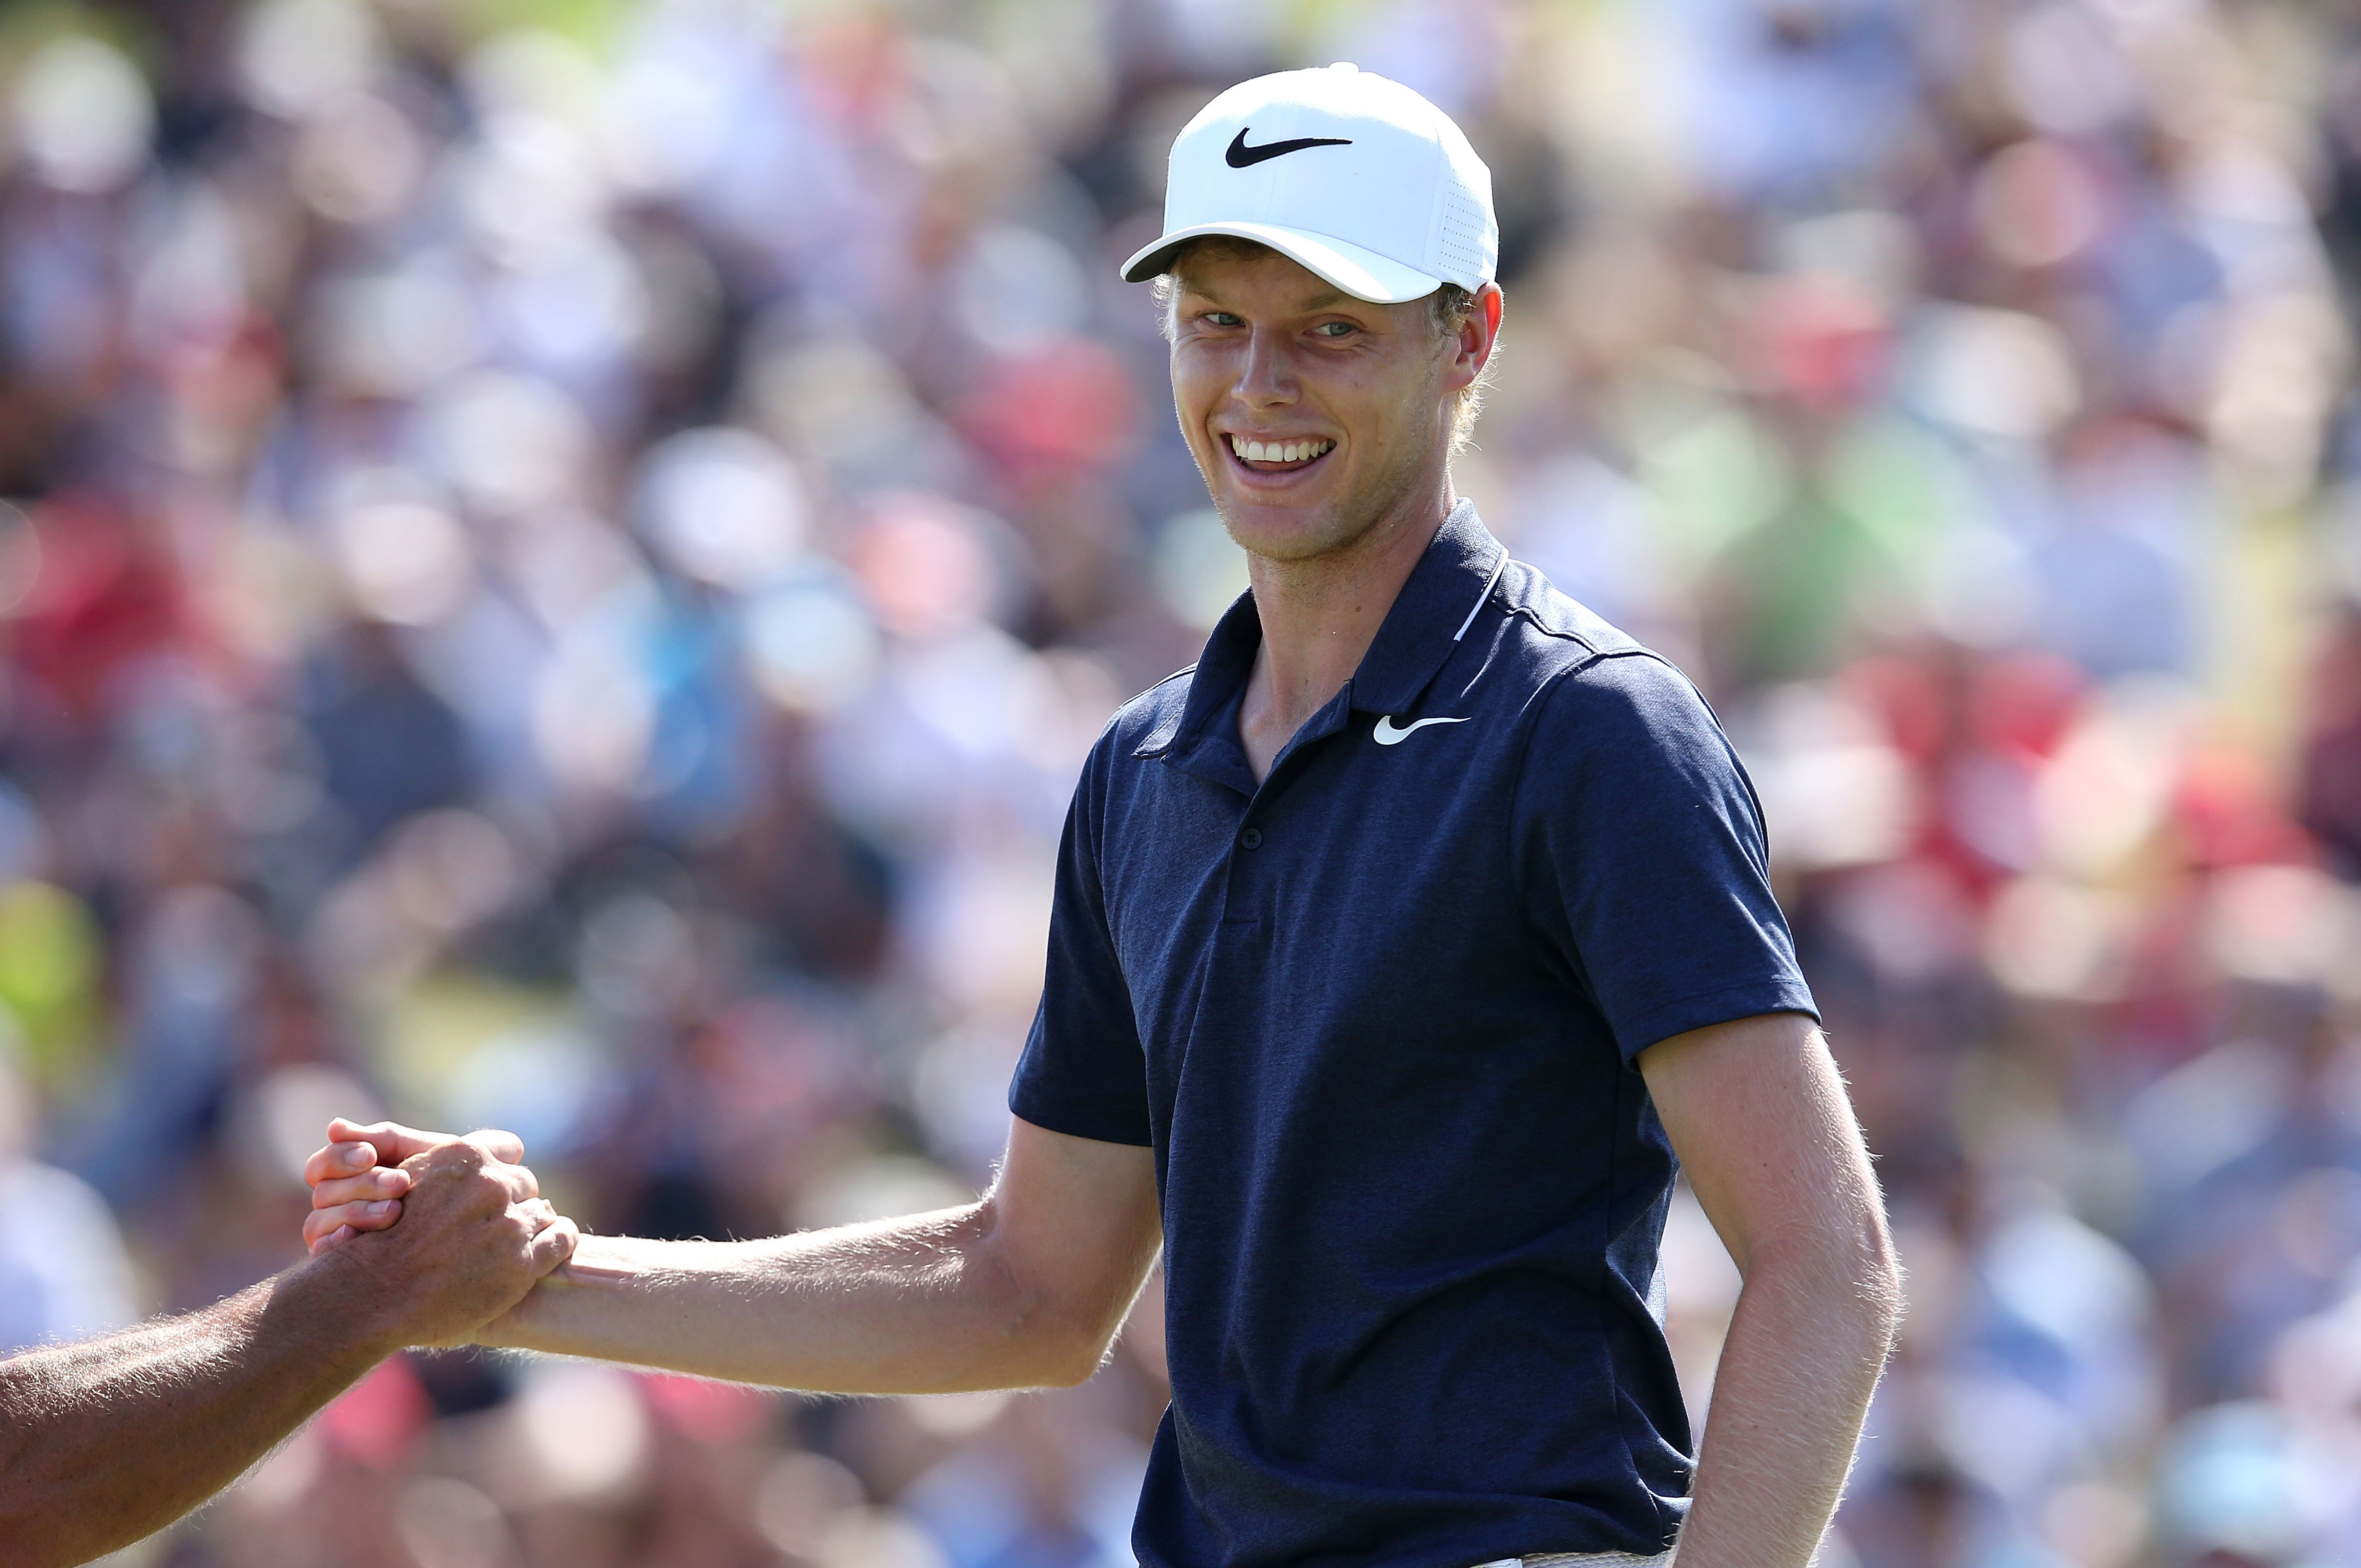 SYDNEY, AUSTRALIA - NOVEMBER 26: Cameron Davis of Australia celebrates holing a putt on the 18th hole during day four of the 2017 Australian Golf Open at the Australian Golf Club on November 26, 2017 in Sydney, Australia. (Photo by Jason McCawley/R&A/R&A via Getty Images)